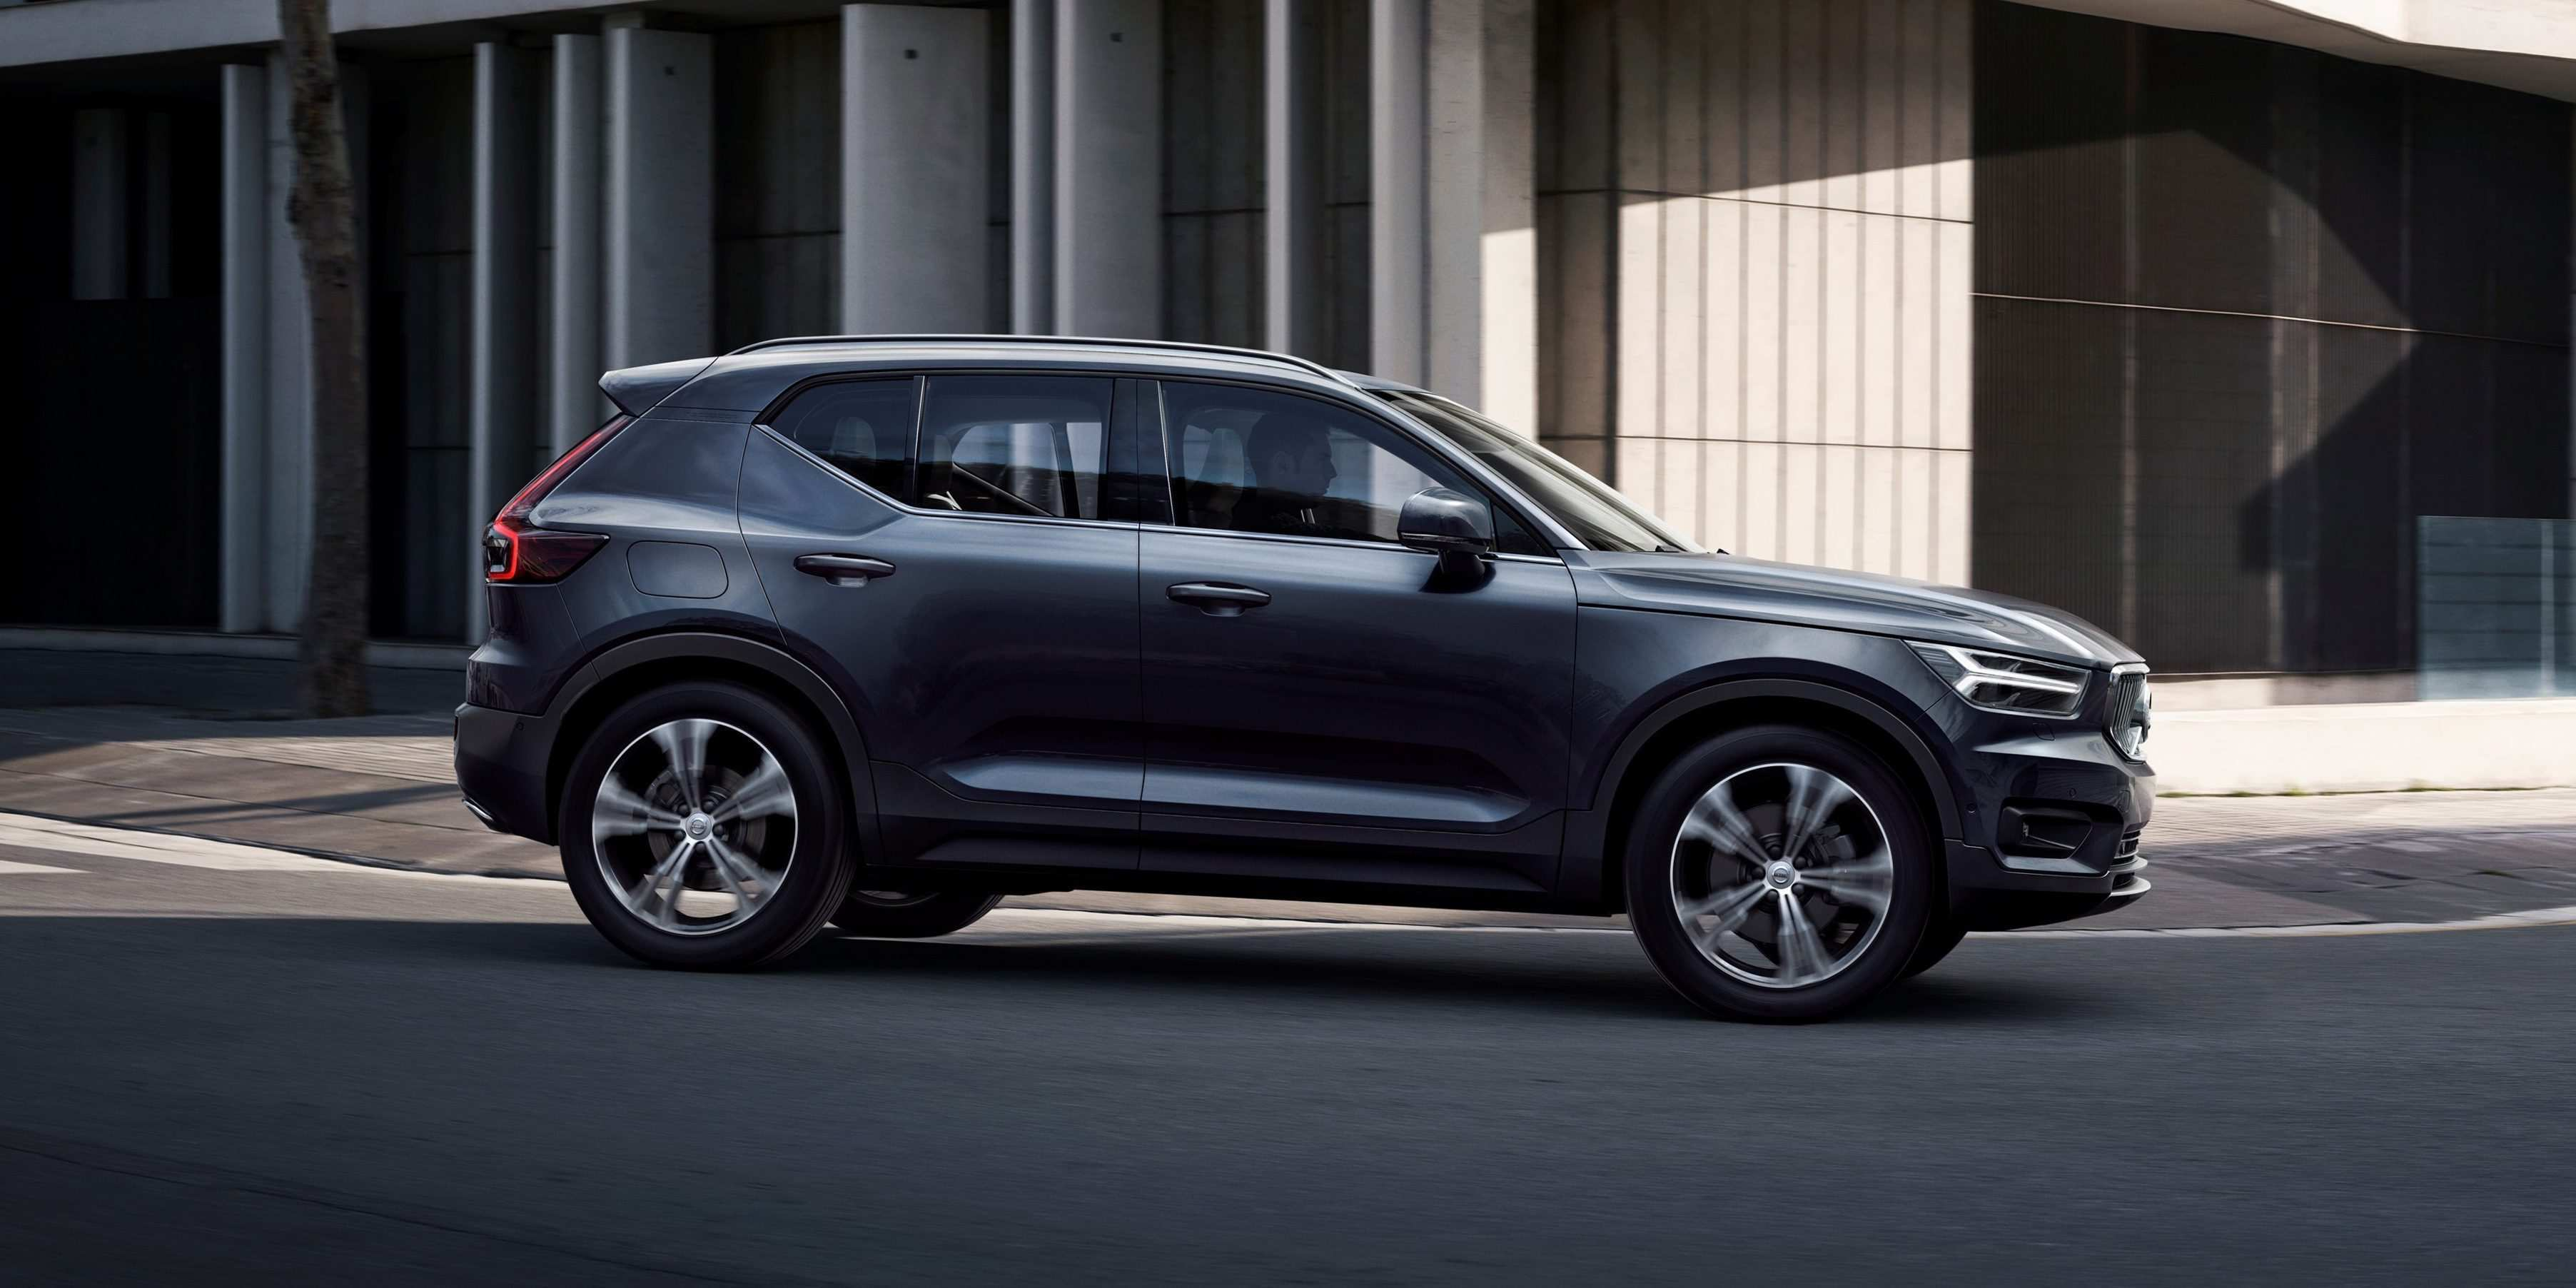 58 A Volvo To Go Electric By 2019 Spy Shoot